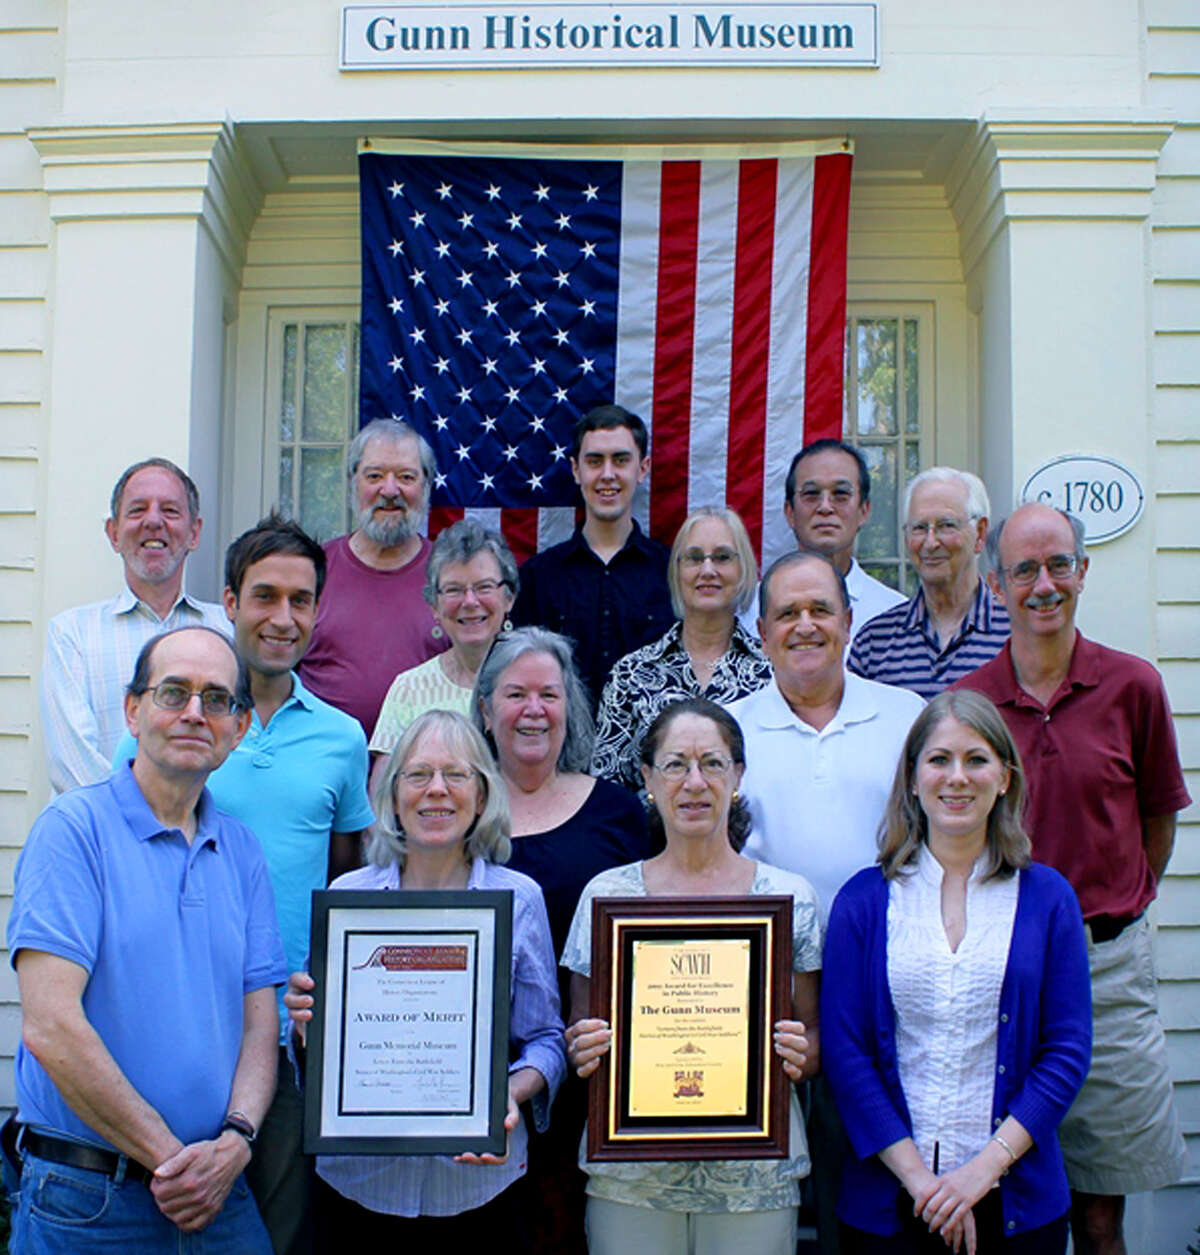 Among the many volunteers and Gunn Memorial Museum staff who assisted with Civil War commemoration are, fronmt row, from left to right, David Babington, Ann Quackenbos, Sandy Booth and Samantha Heberton; second row: museum curator Stephen Bartkus, Paula Krimsky, Keith Templeton and Michael Bird, third row, Richard Kleinberg, Nancy Chute, Sarah Griswold and Willie Smith; and, fourth row, Douglas Schlicher, Zachary Bodnar and Chris Zaima. Courtesy of Gunn Memorial Museum